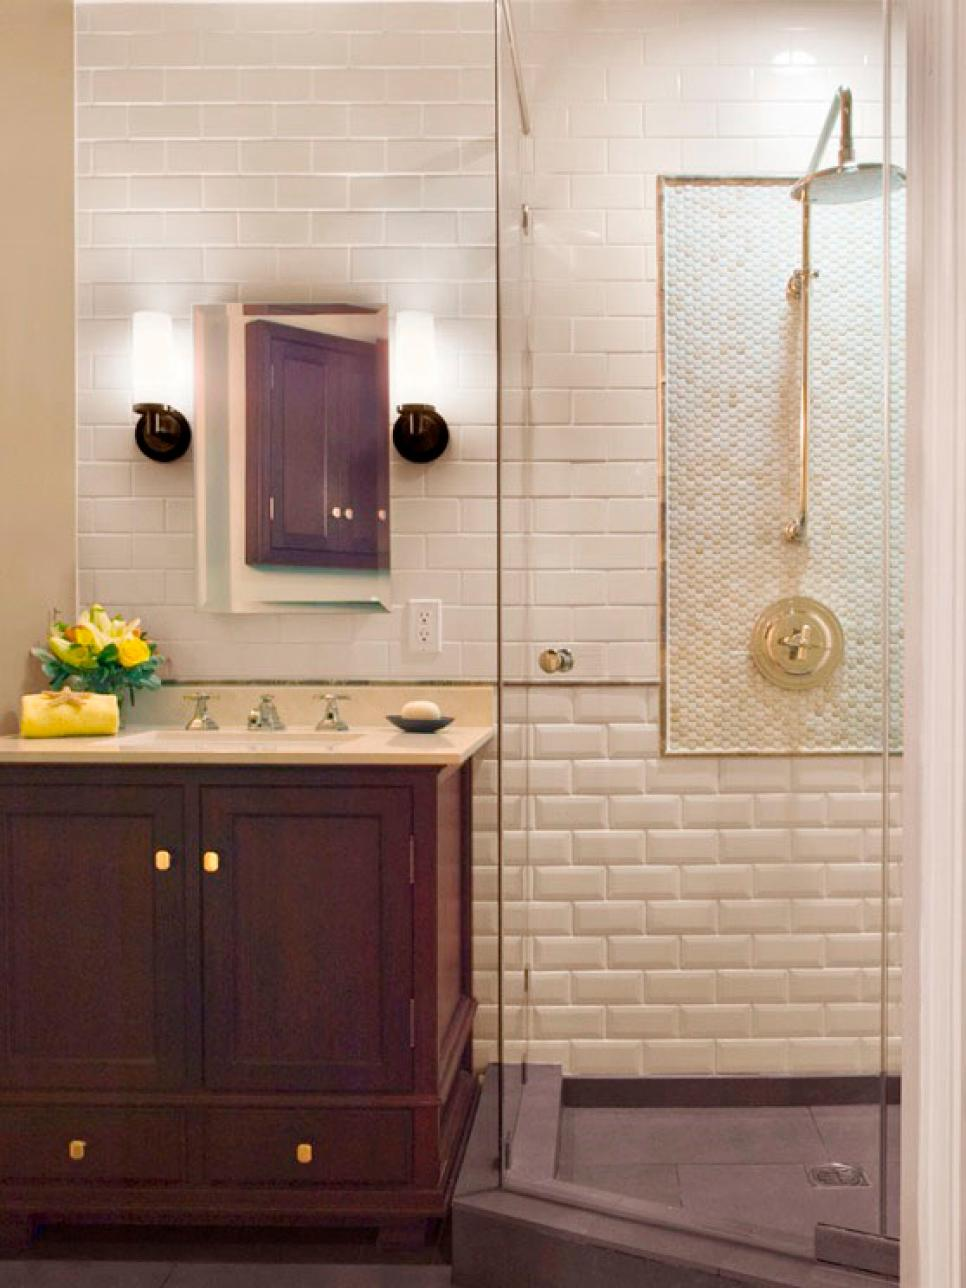 Bathroom shower designs hgtv for Hgtv small bathroom design ideas